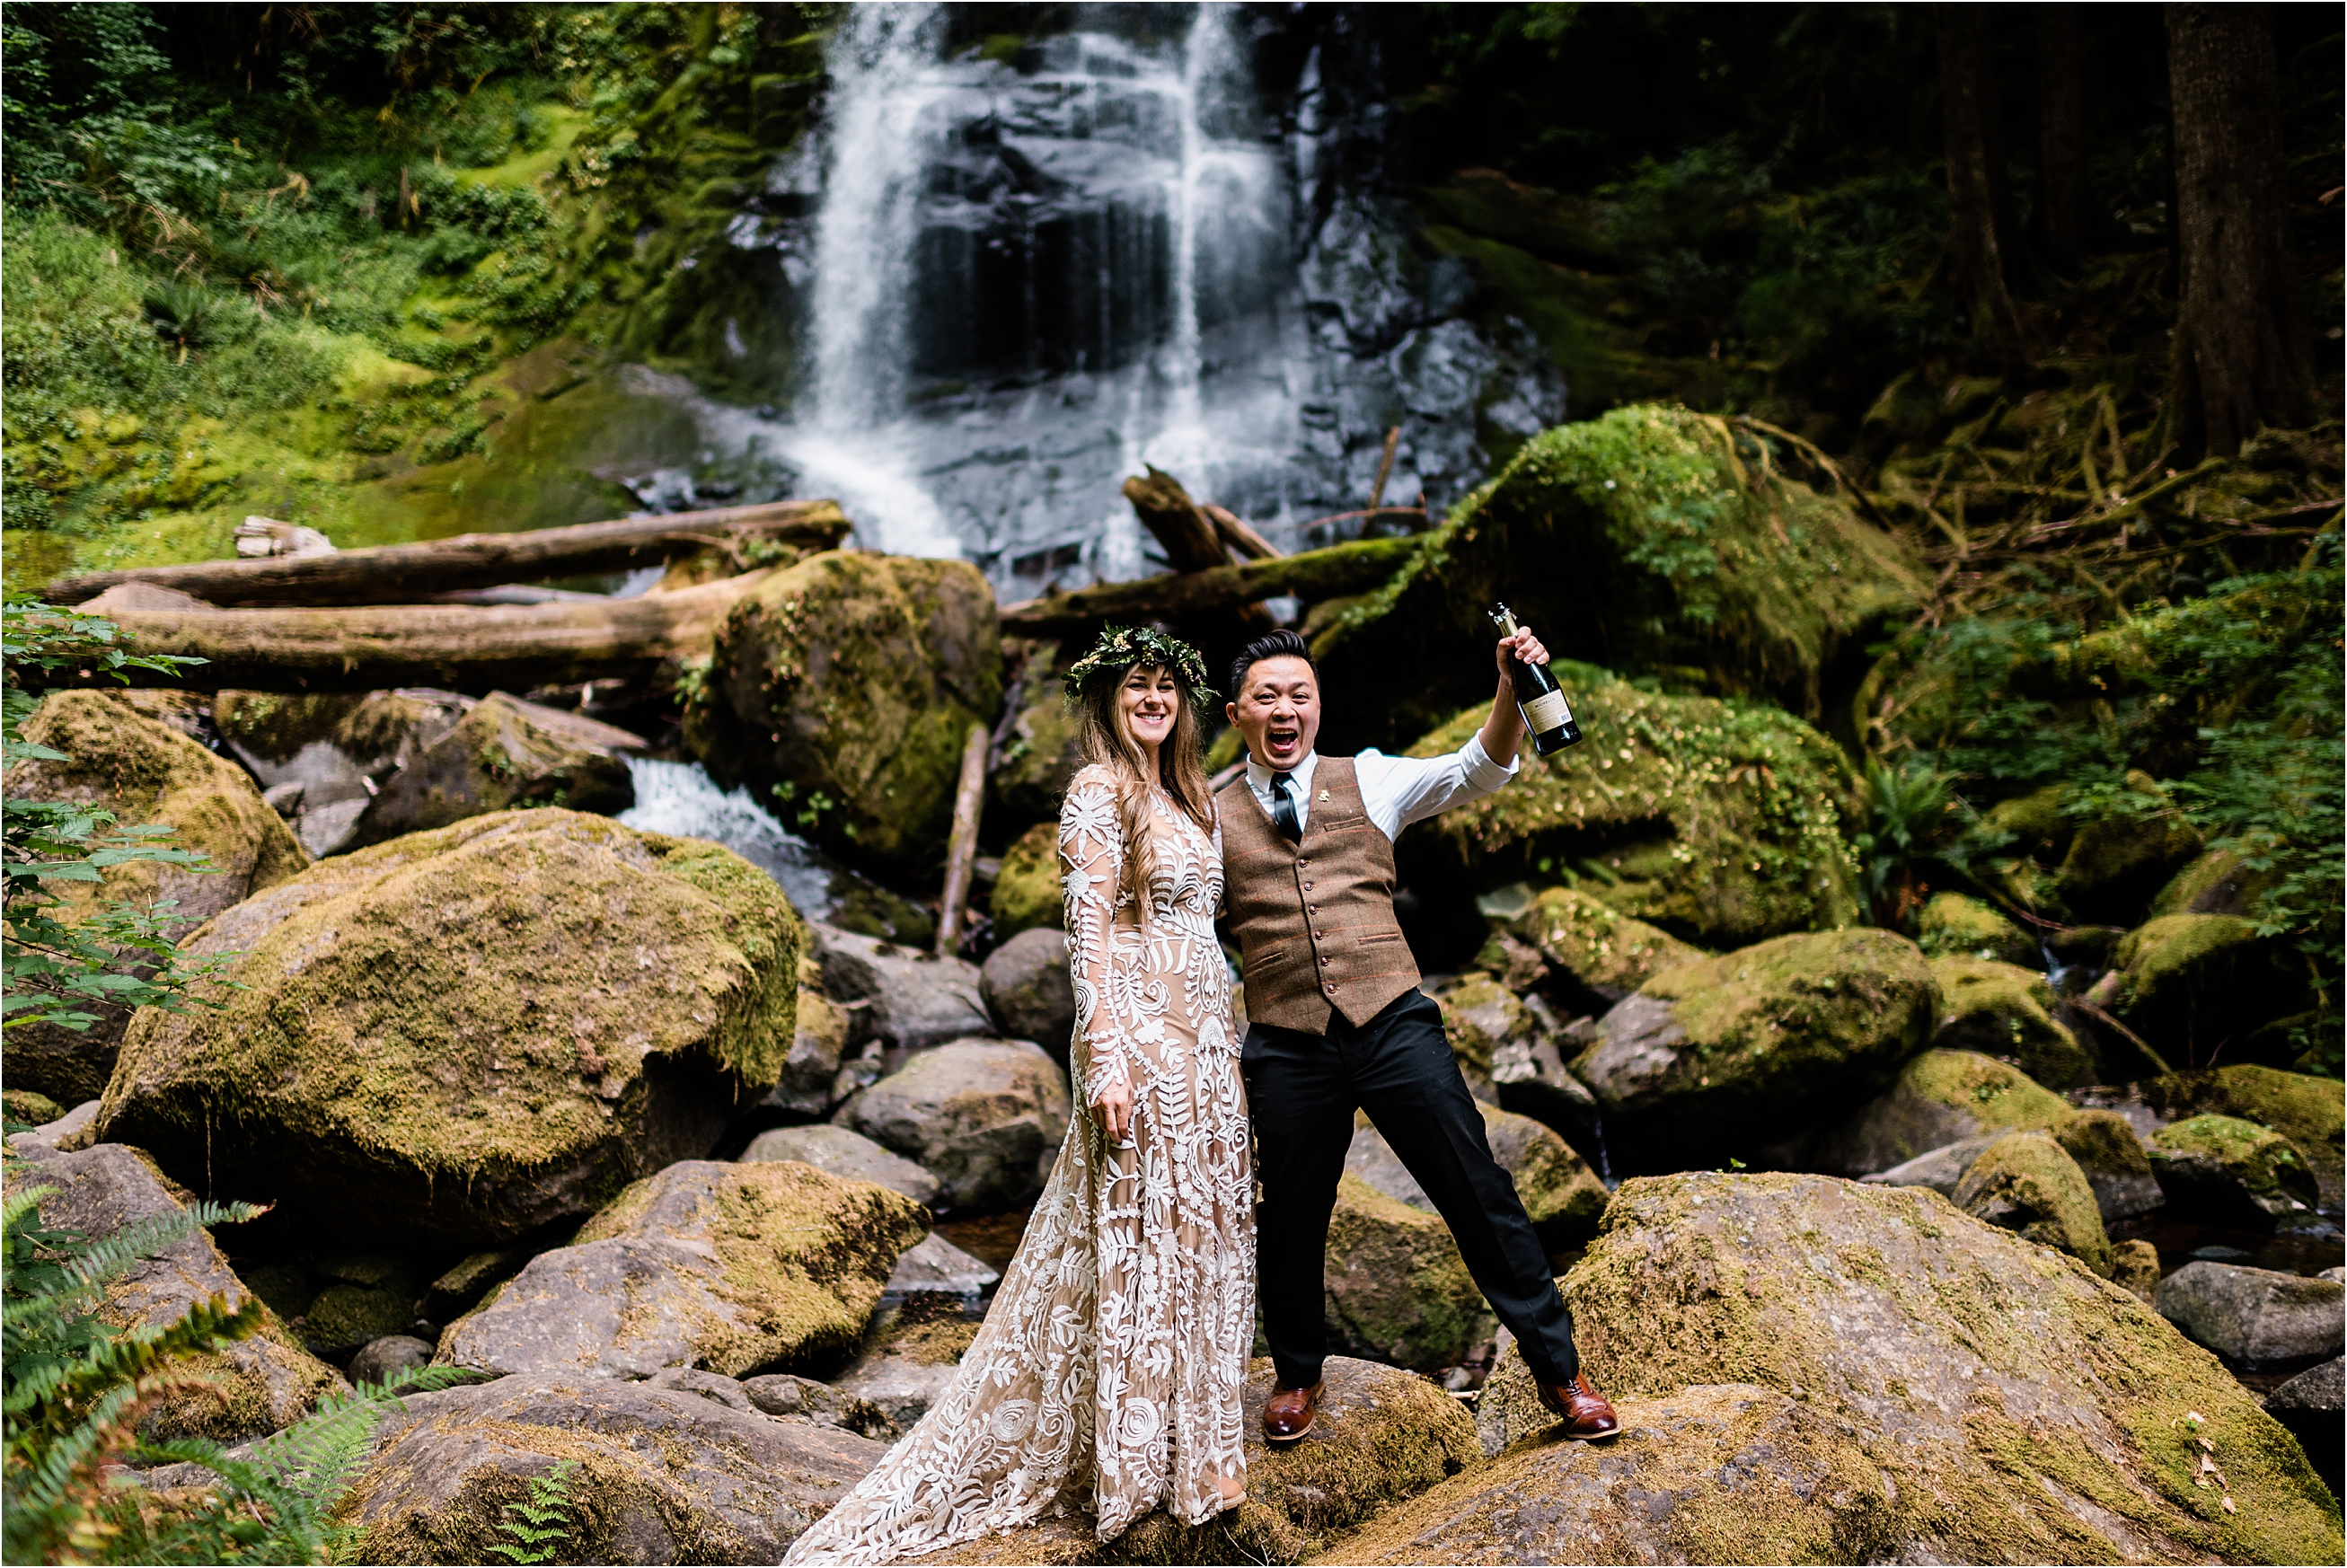 Newlyweds pop champagne at a waterfall adventure wedding in Oregon. Image by Forthright Photo, Seattle Wedding & Elopement Photographers.